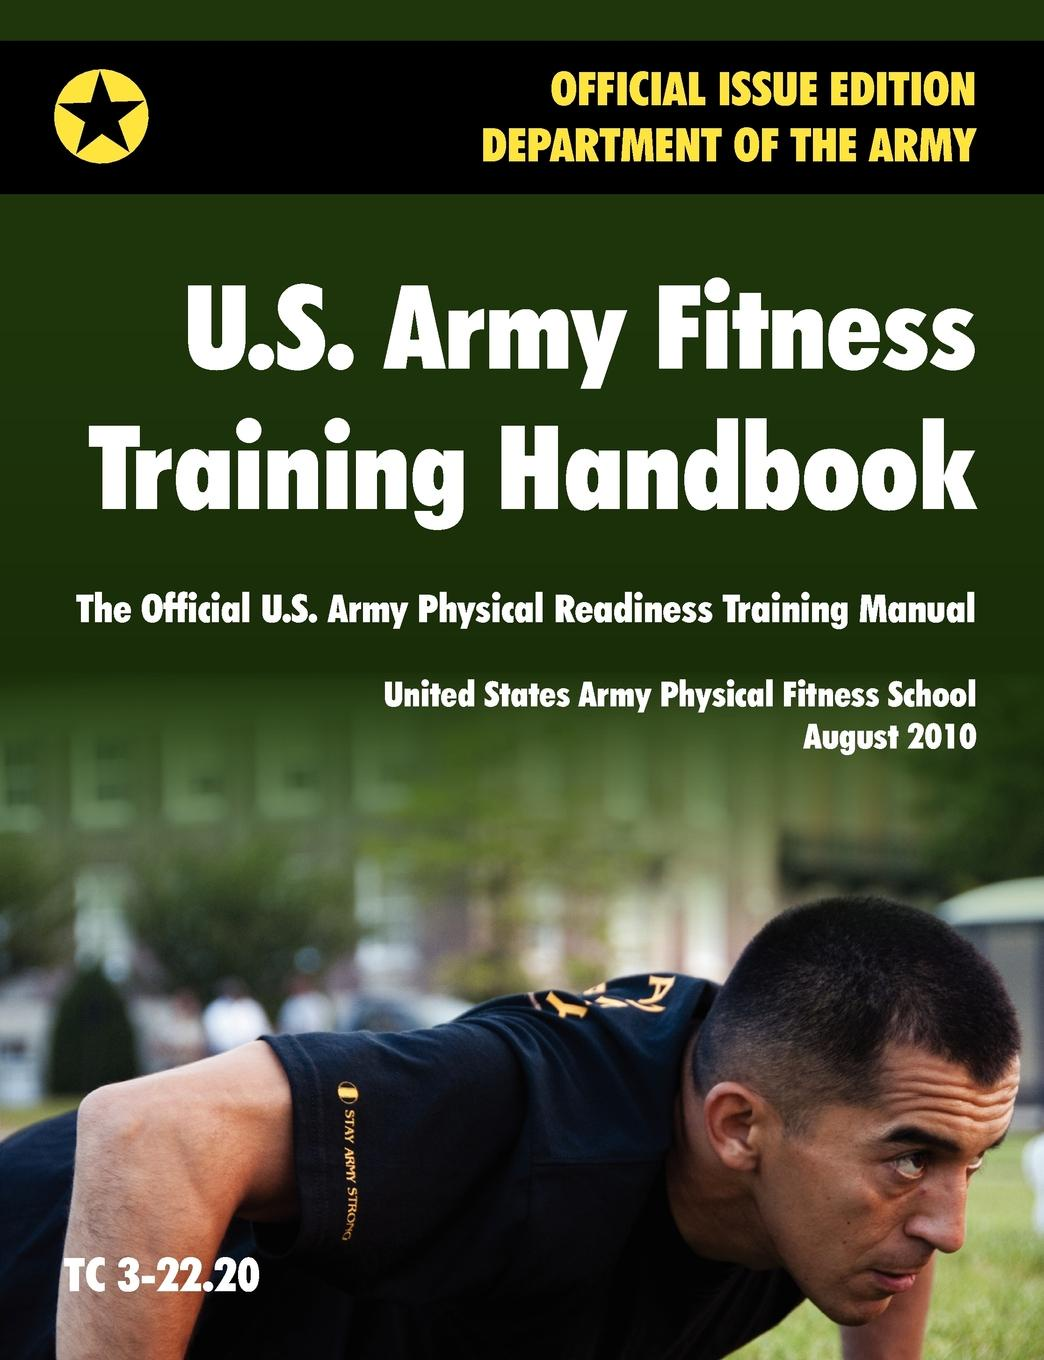 U.S. Army Physical Fitness School, U.S. Department of the Army U.S. Army Fitness Training Handbook. The Official U.S. Army Physical Readiness Training Manual (August 2010 revision, Training Circular TC 3-22.20) department of the army u s army corps of engineers water resource policies and authorities incorporating sea level change considerations in civil works programs